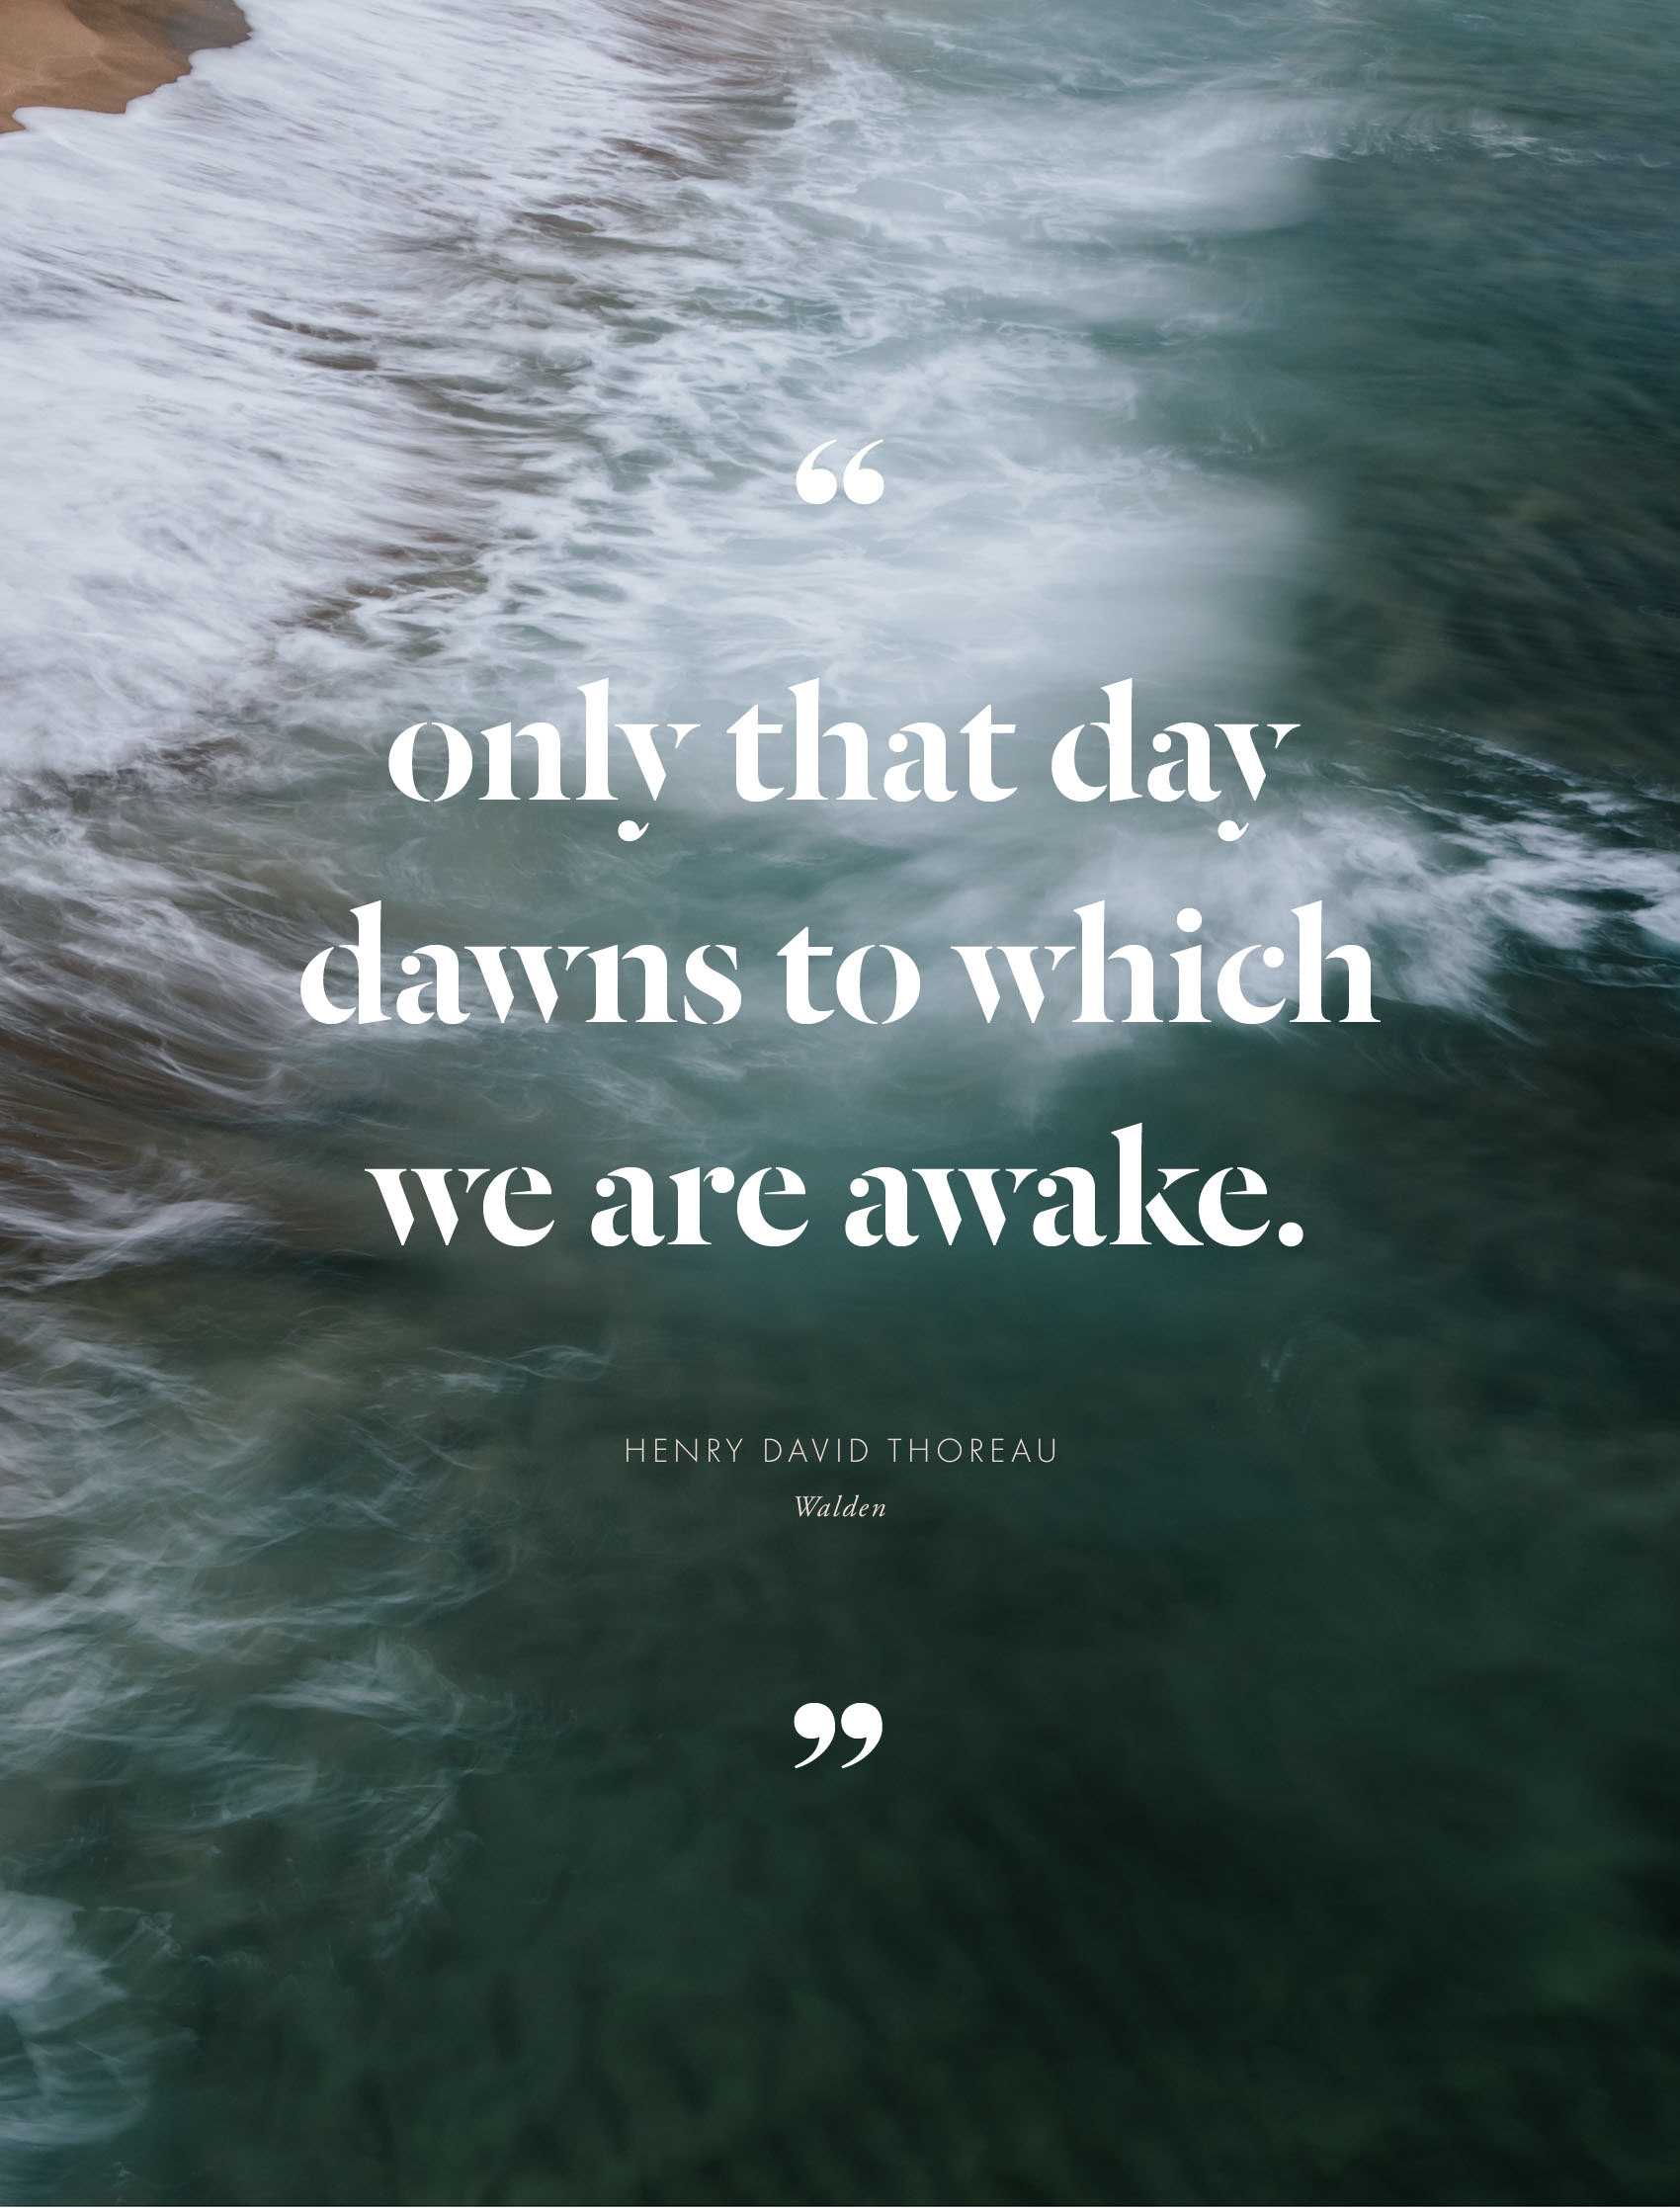 quote-only-that-day-dawns-to-which-we-are-awake